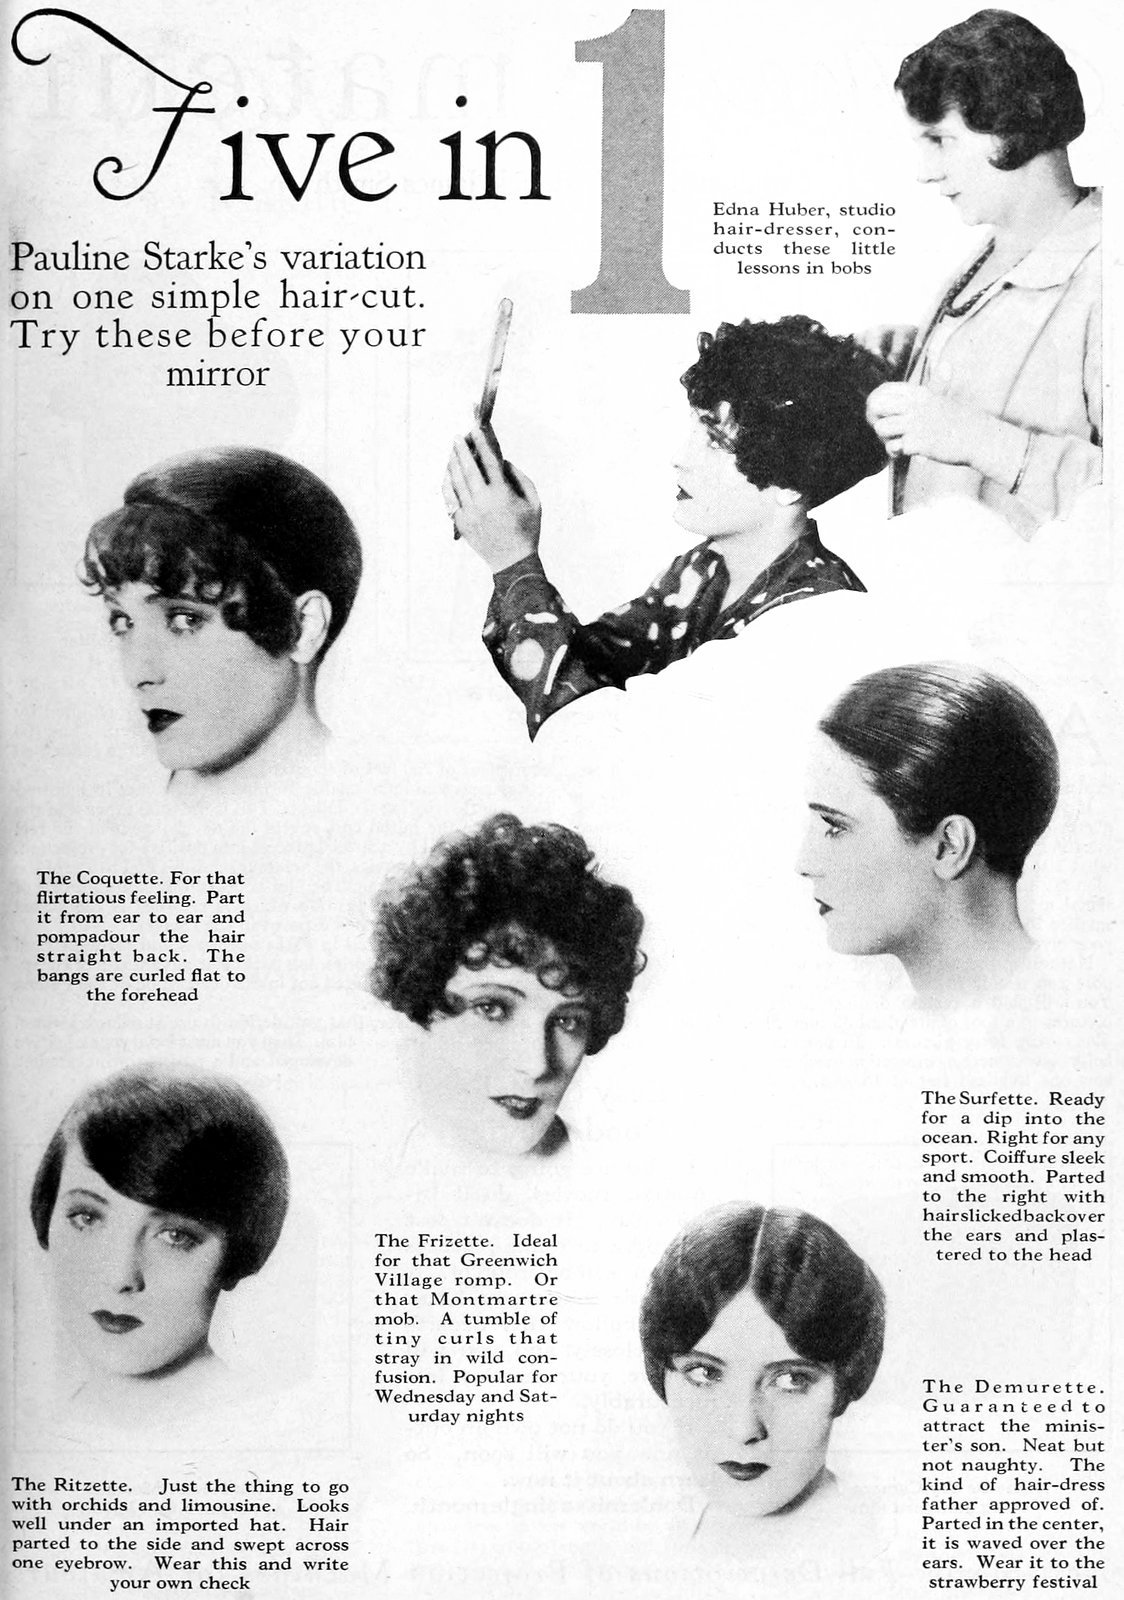 Old-fashioned 1920s actress Pauline Starke haircut and hairstyles